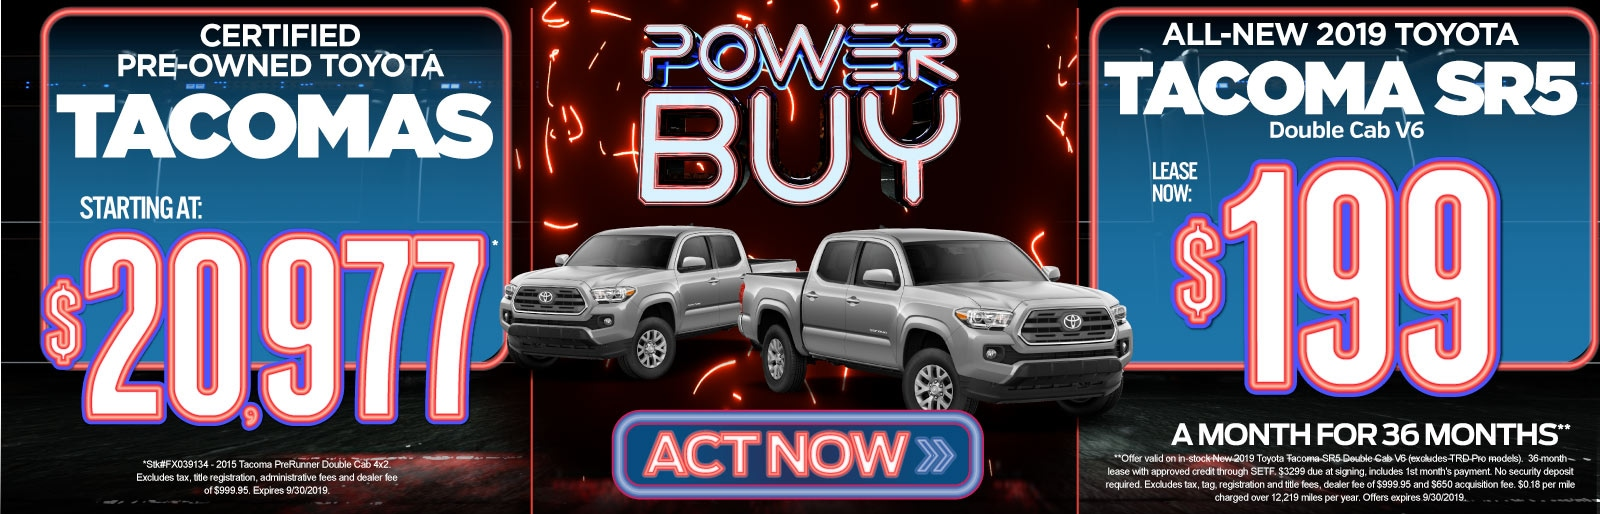 Palm Beach Toyota | New and Used Toyota Cars in West Palm Beach